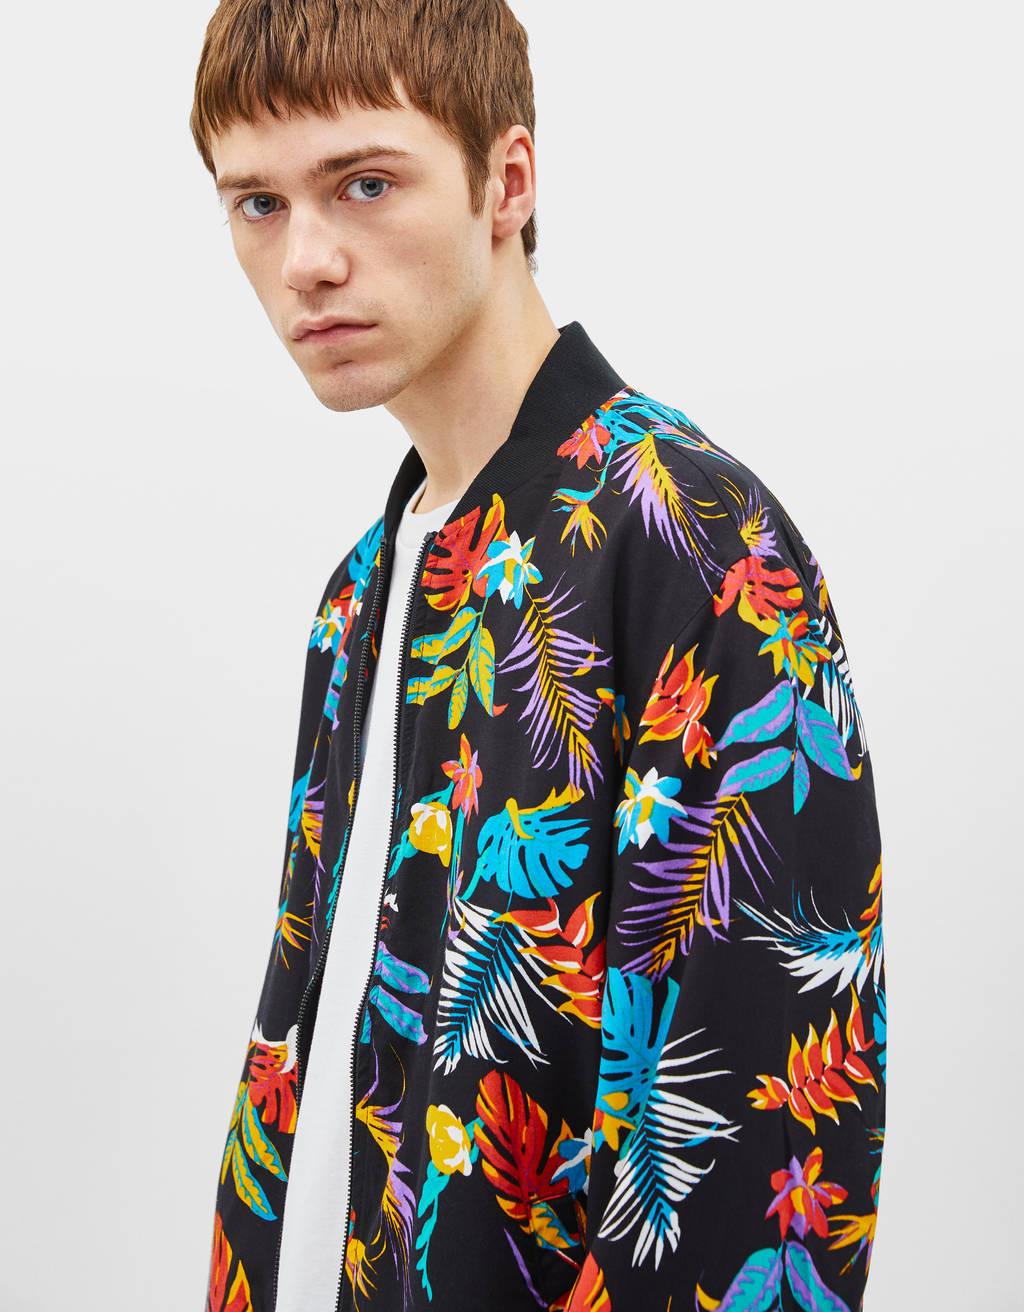 Bomber jacket com estampado